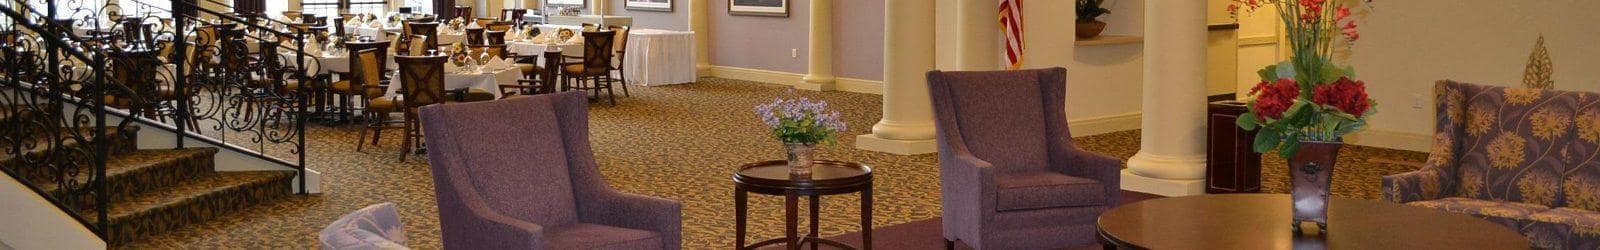 Senior living in Richmond, VA